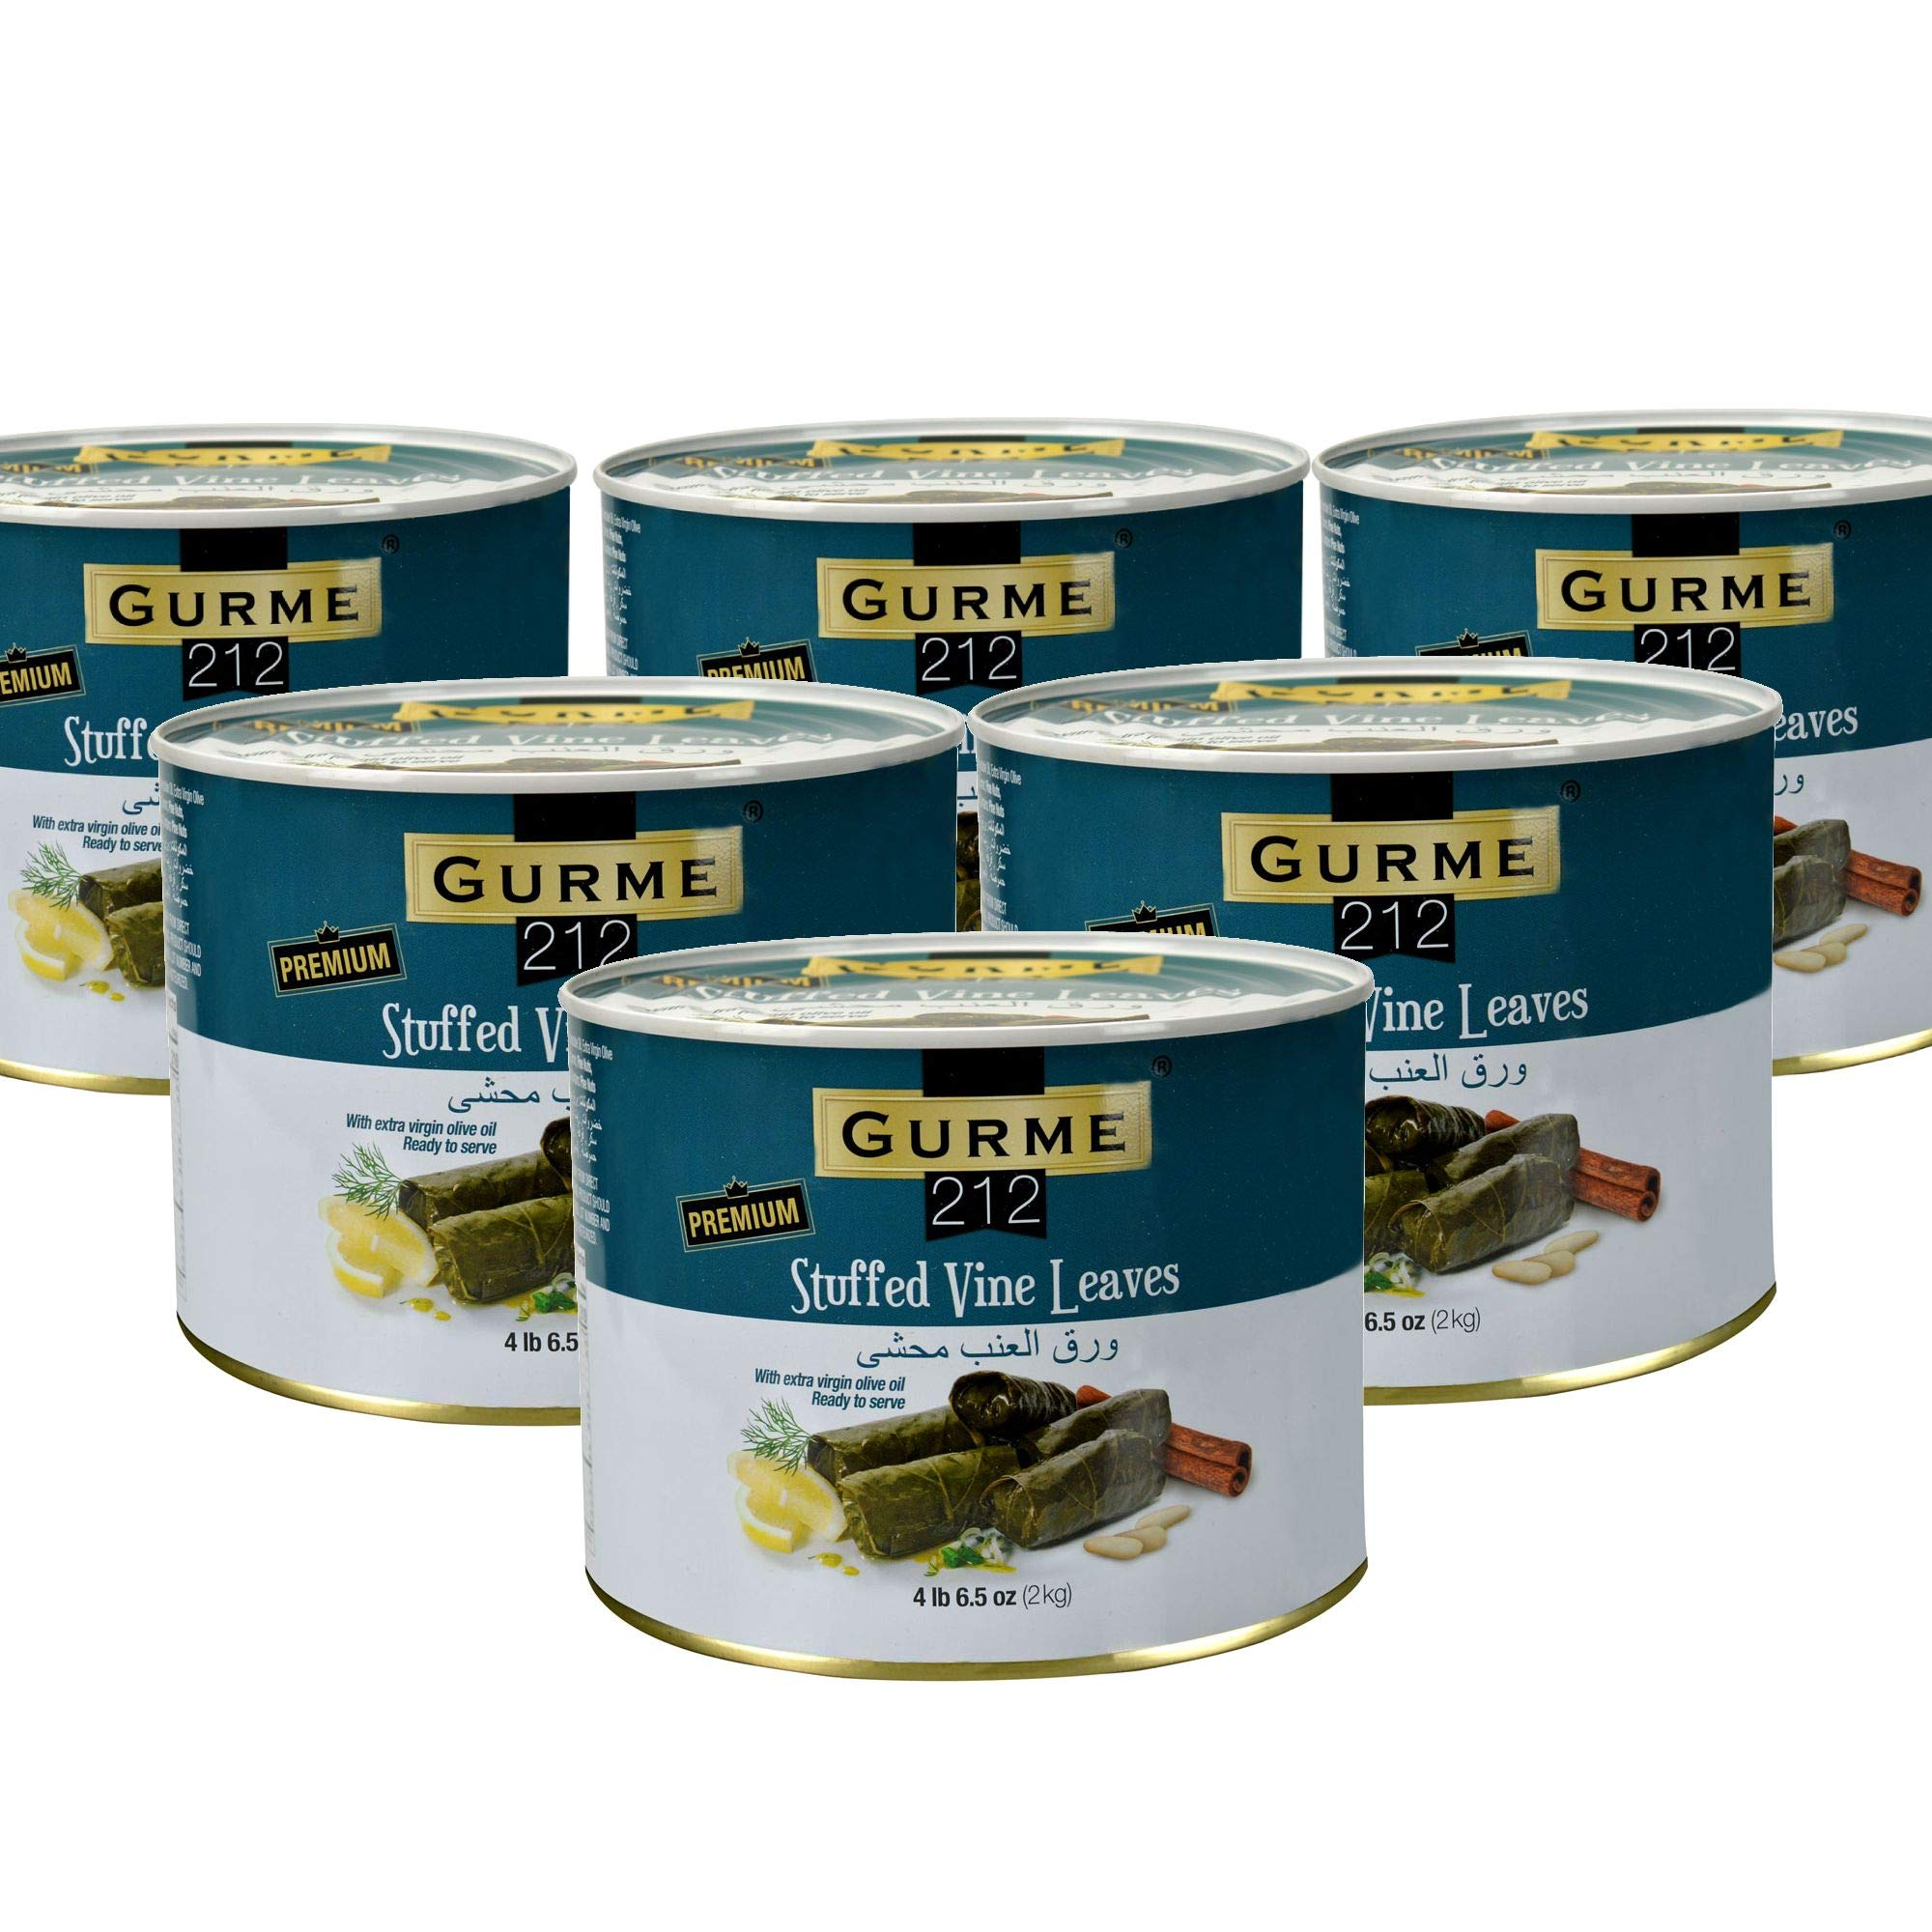 Gurme212 Premium (Bulk 6-pack) 4.4 lbs Stuffed Vine Leaves (Dolmades) with Olive Oil (1-can available)